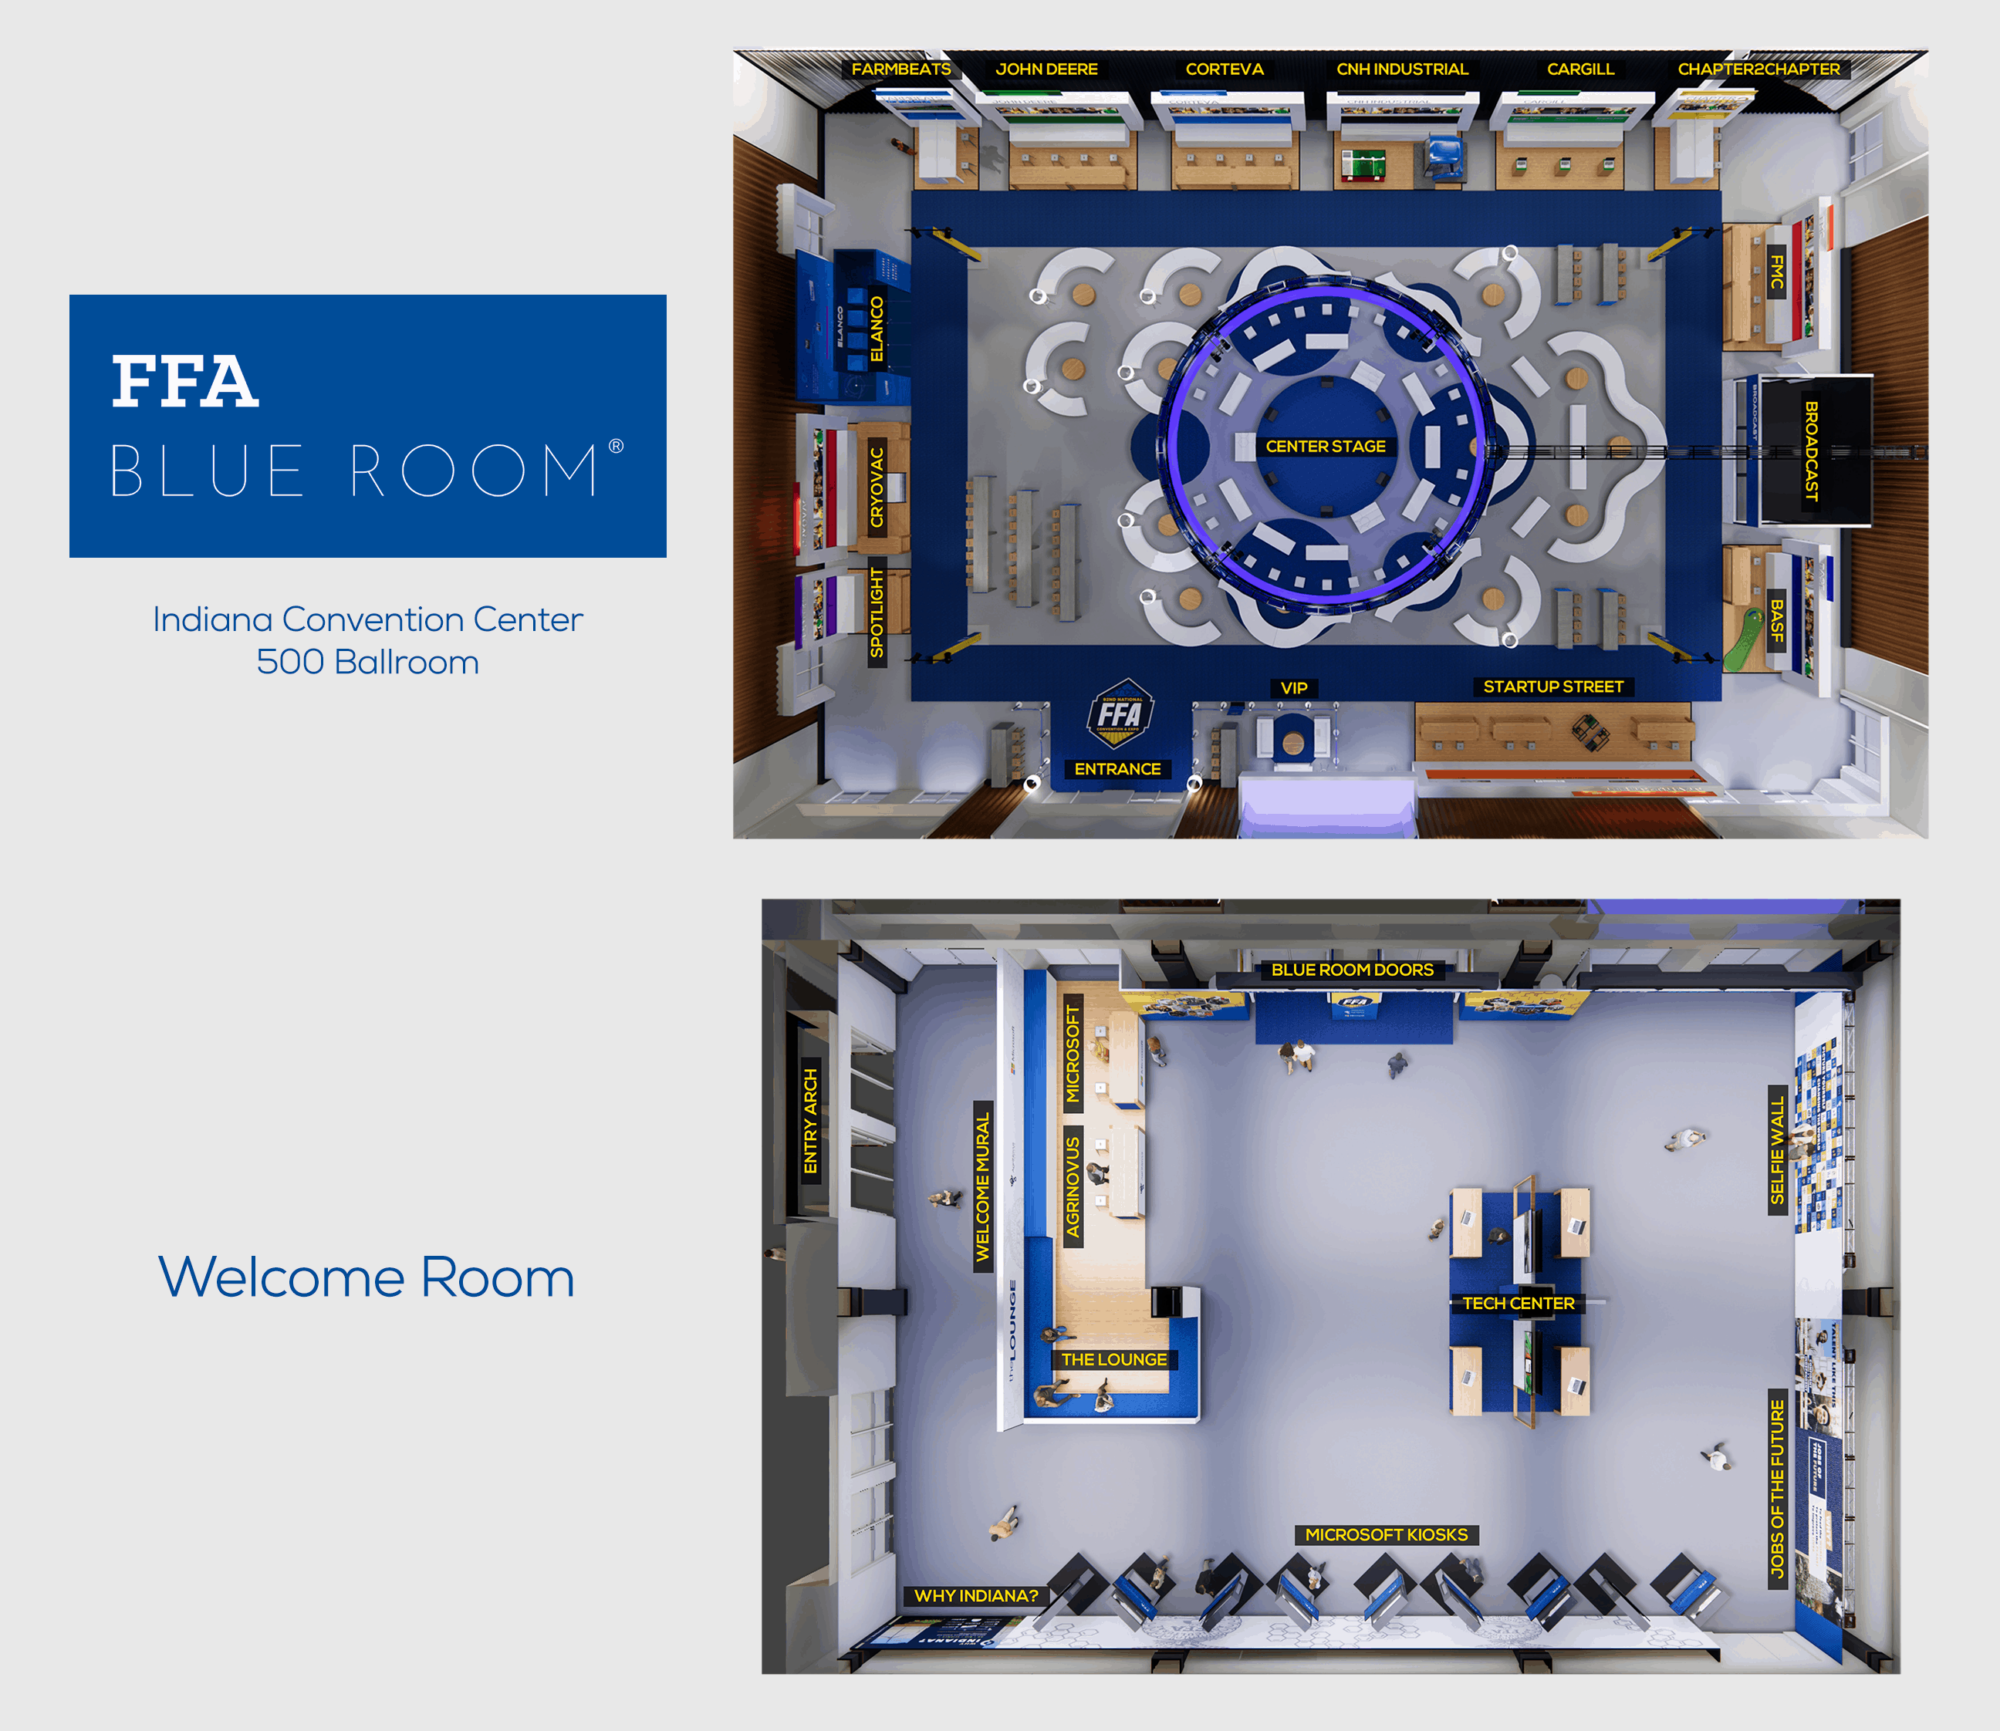 FFA Blue Room Map